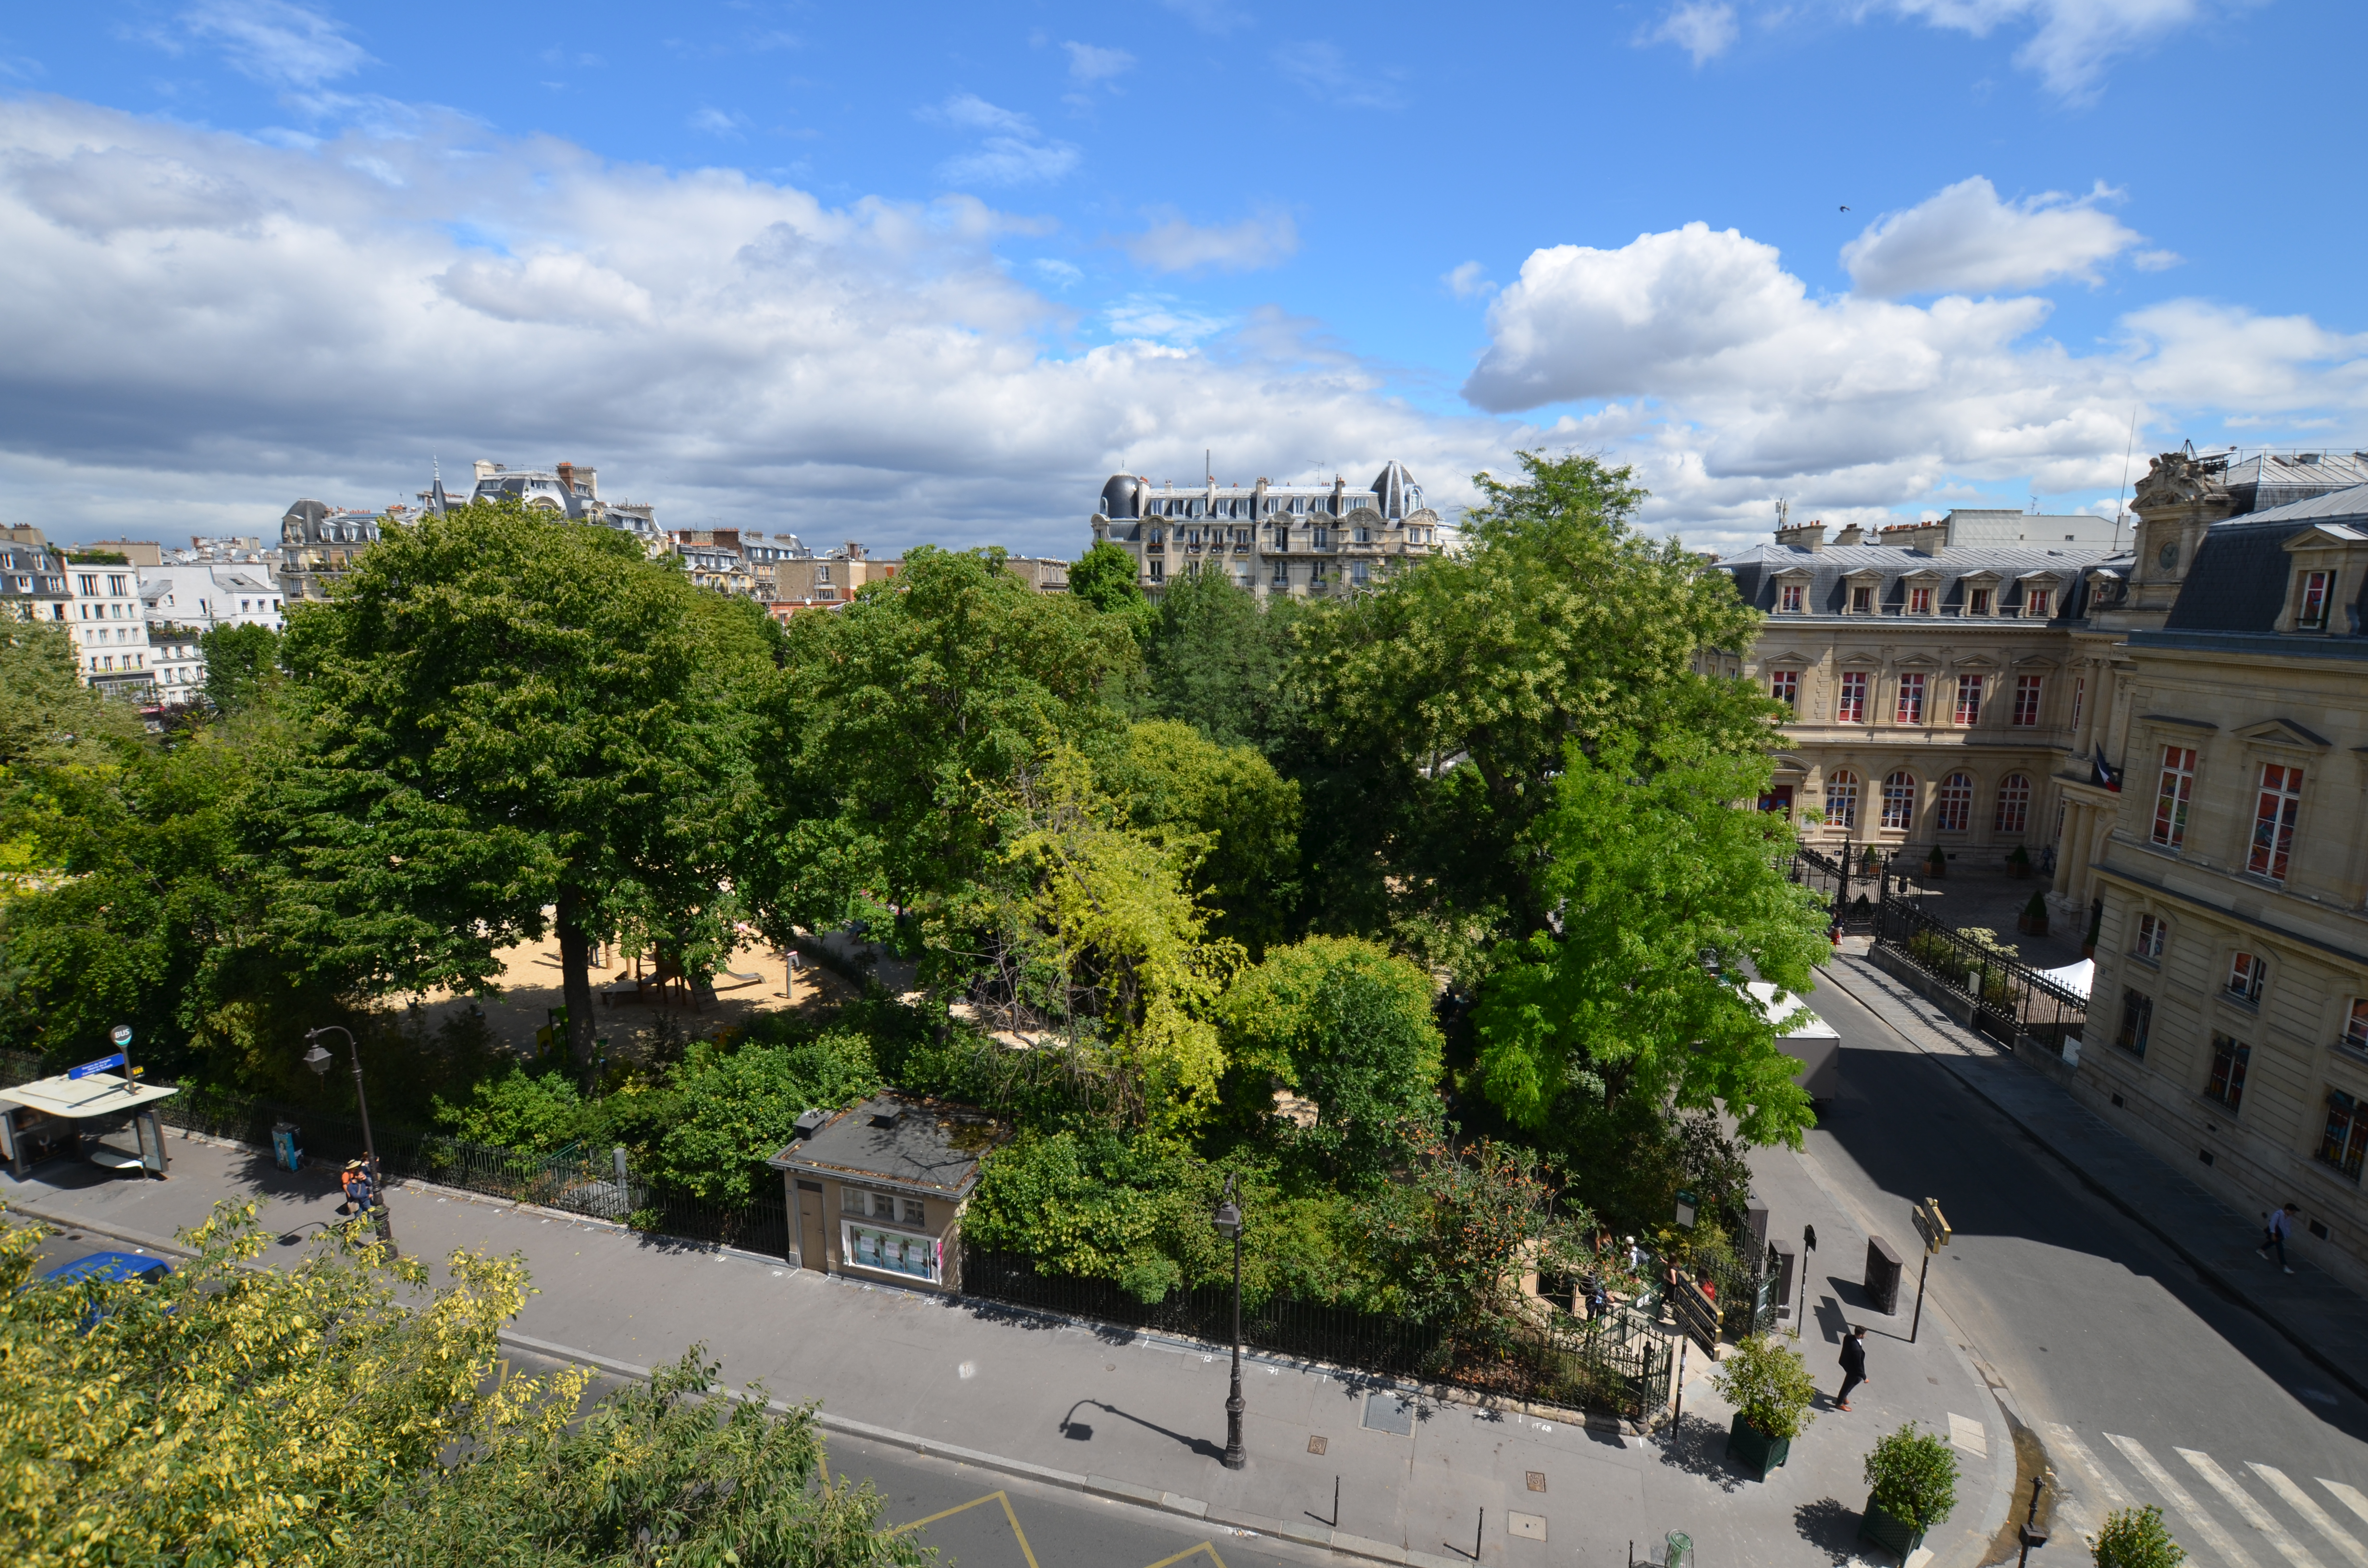 Vente appartement paris temple 3e arrondissement 75003 sur for Vente atypique paris